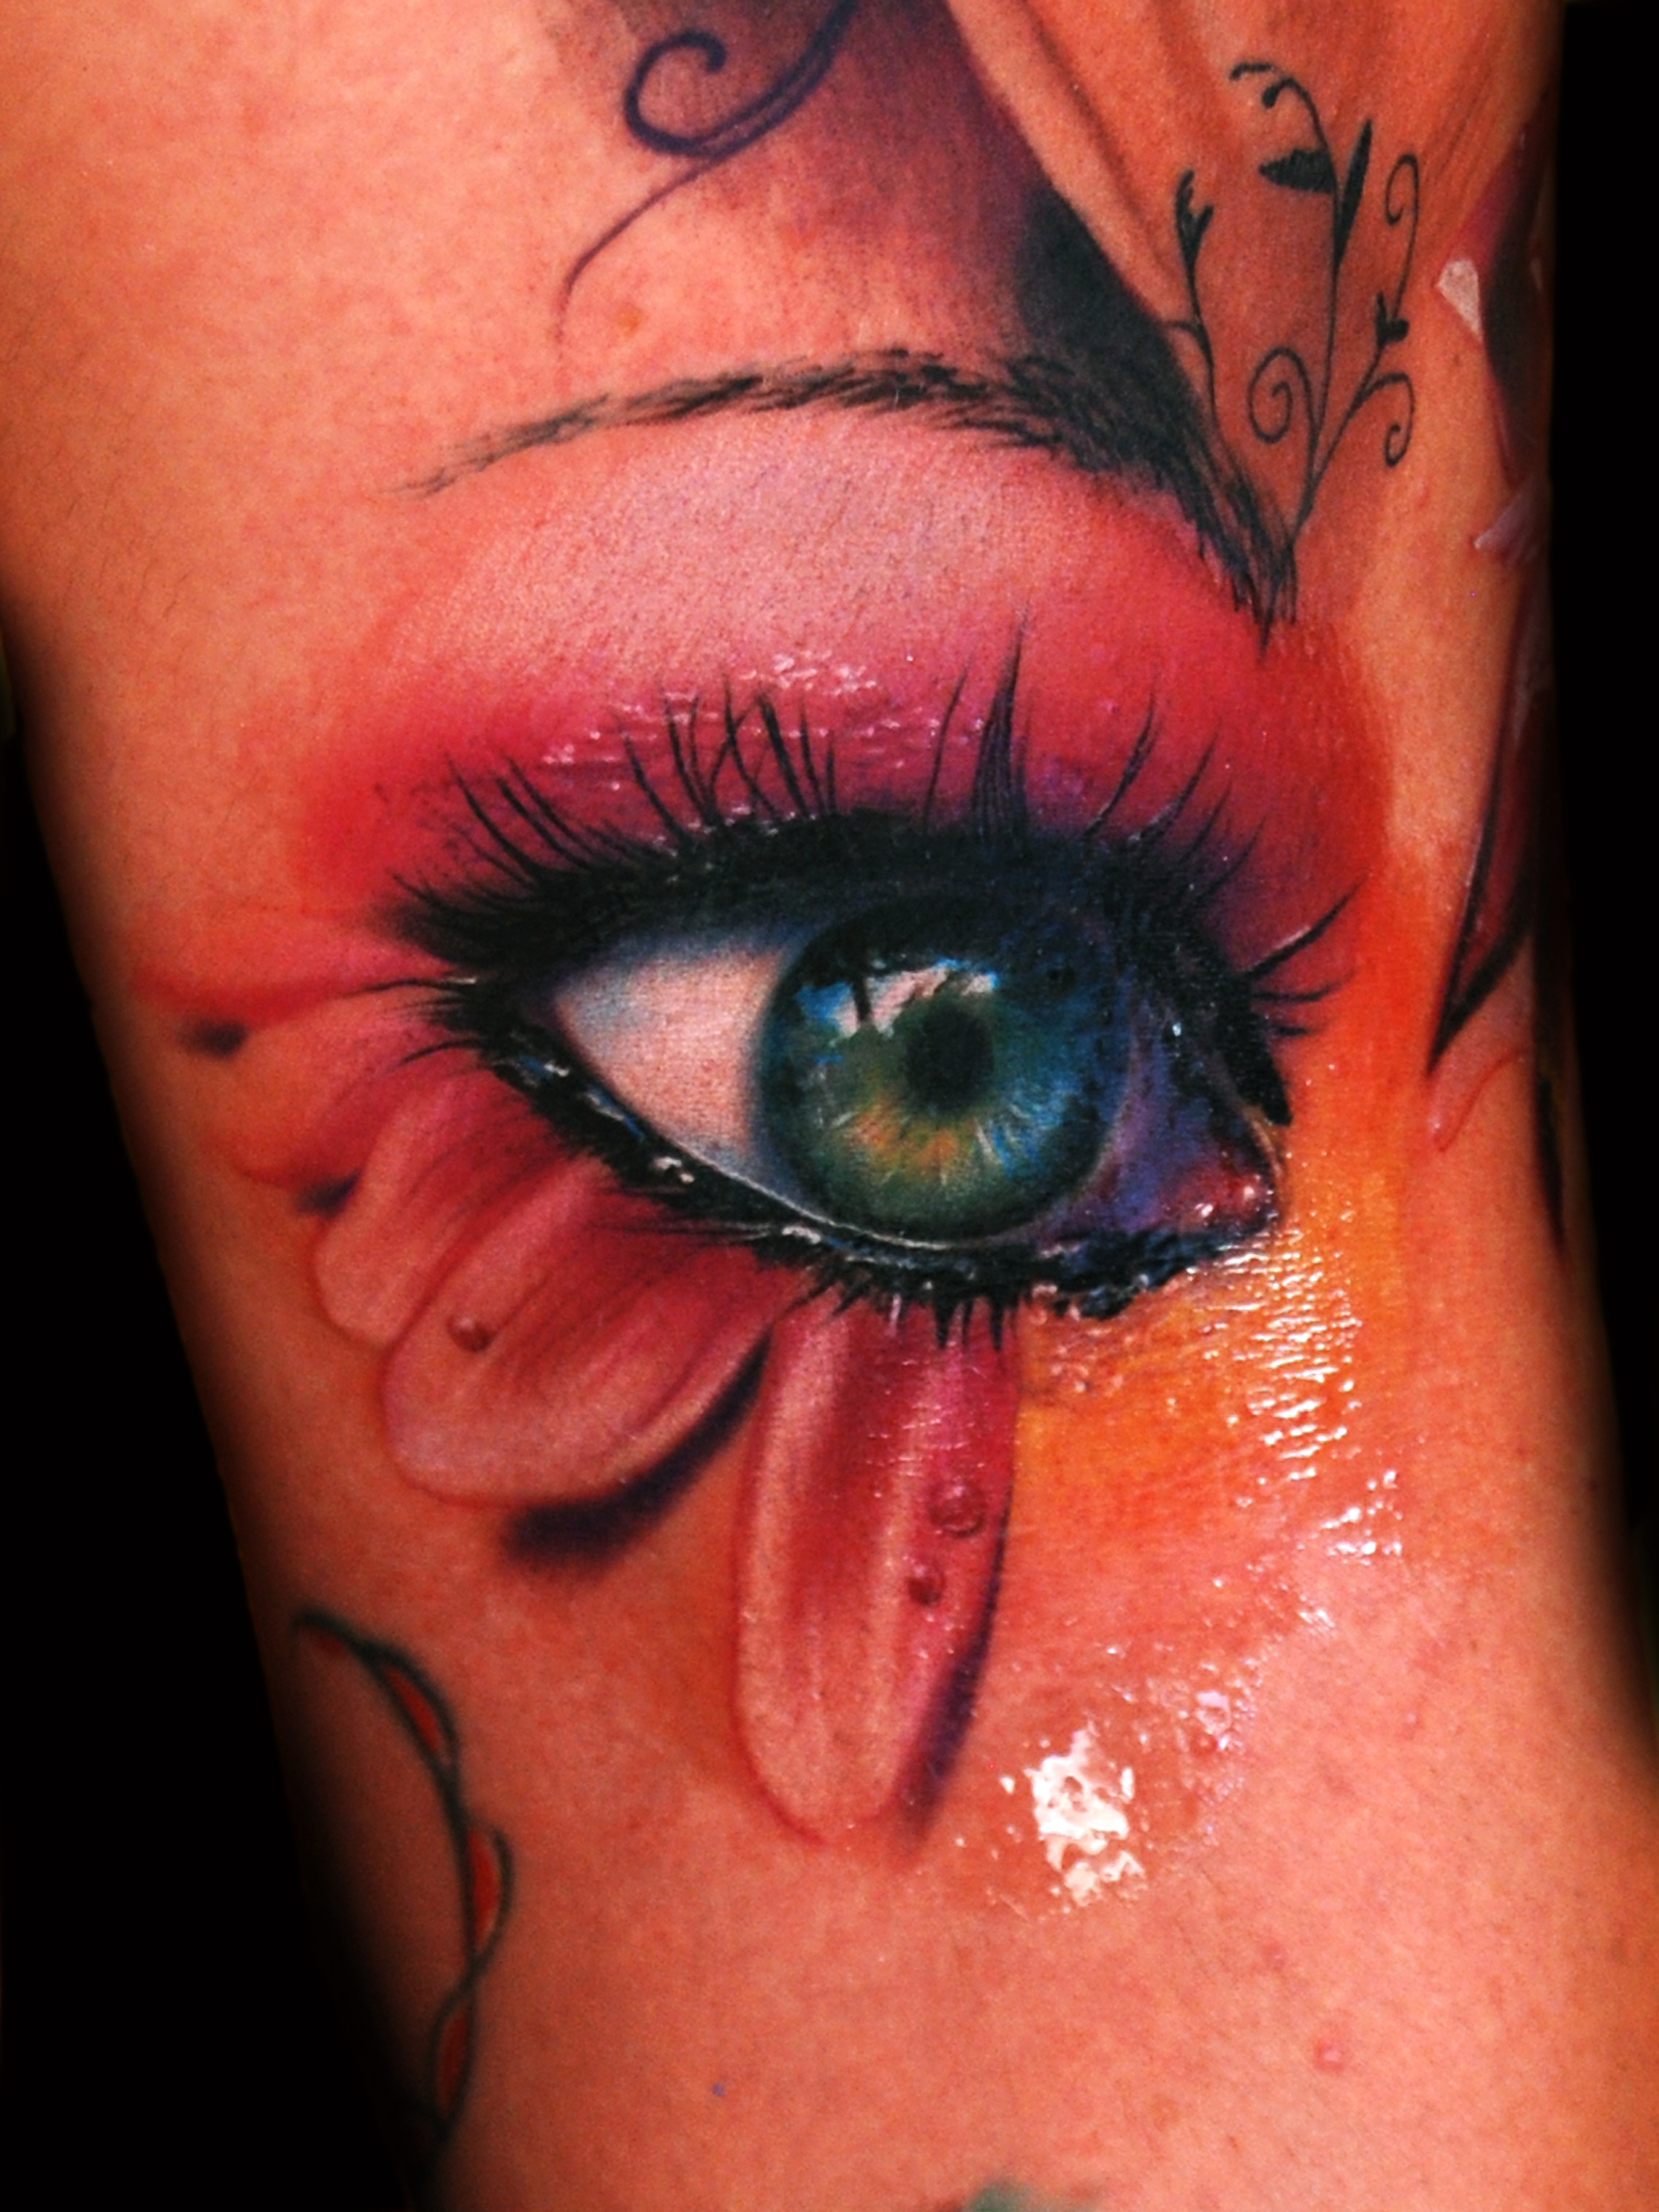 an incredible tattoo artist near venice alex de pase ForEye Tattoo Art